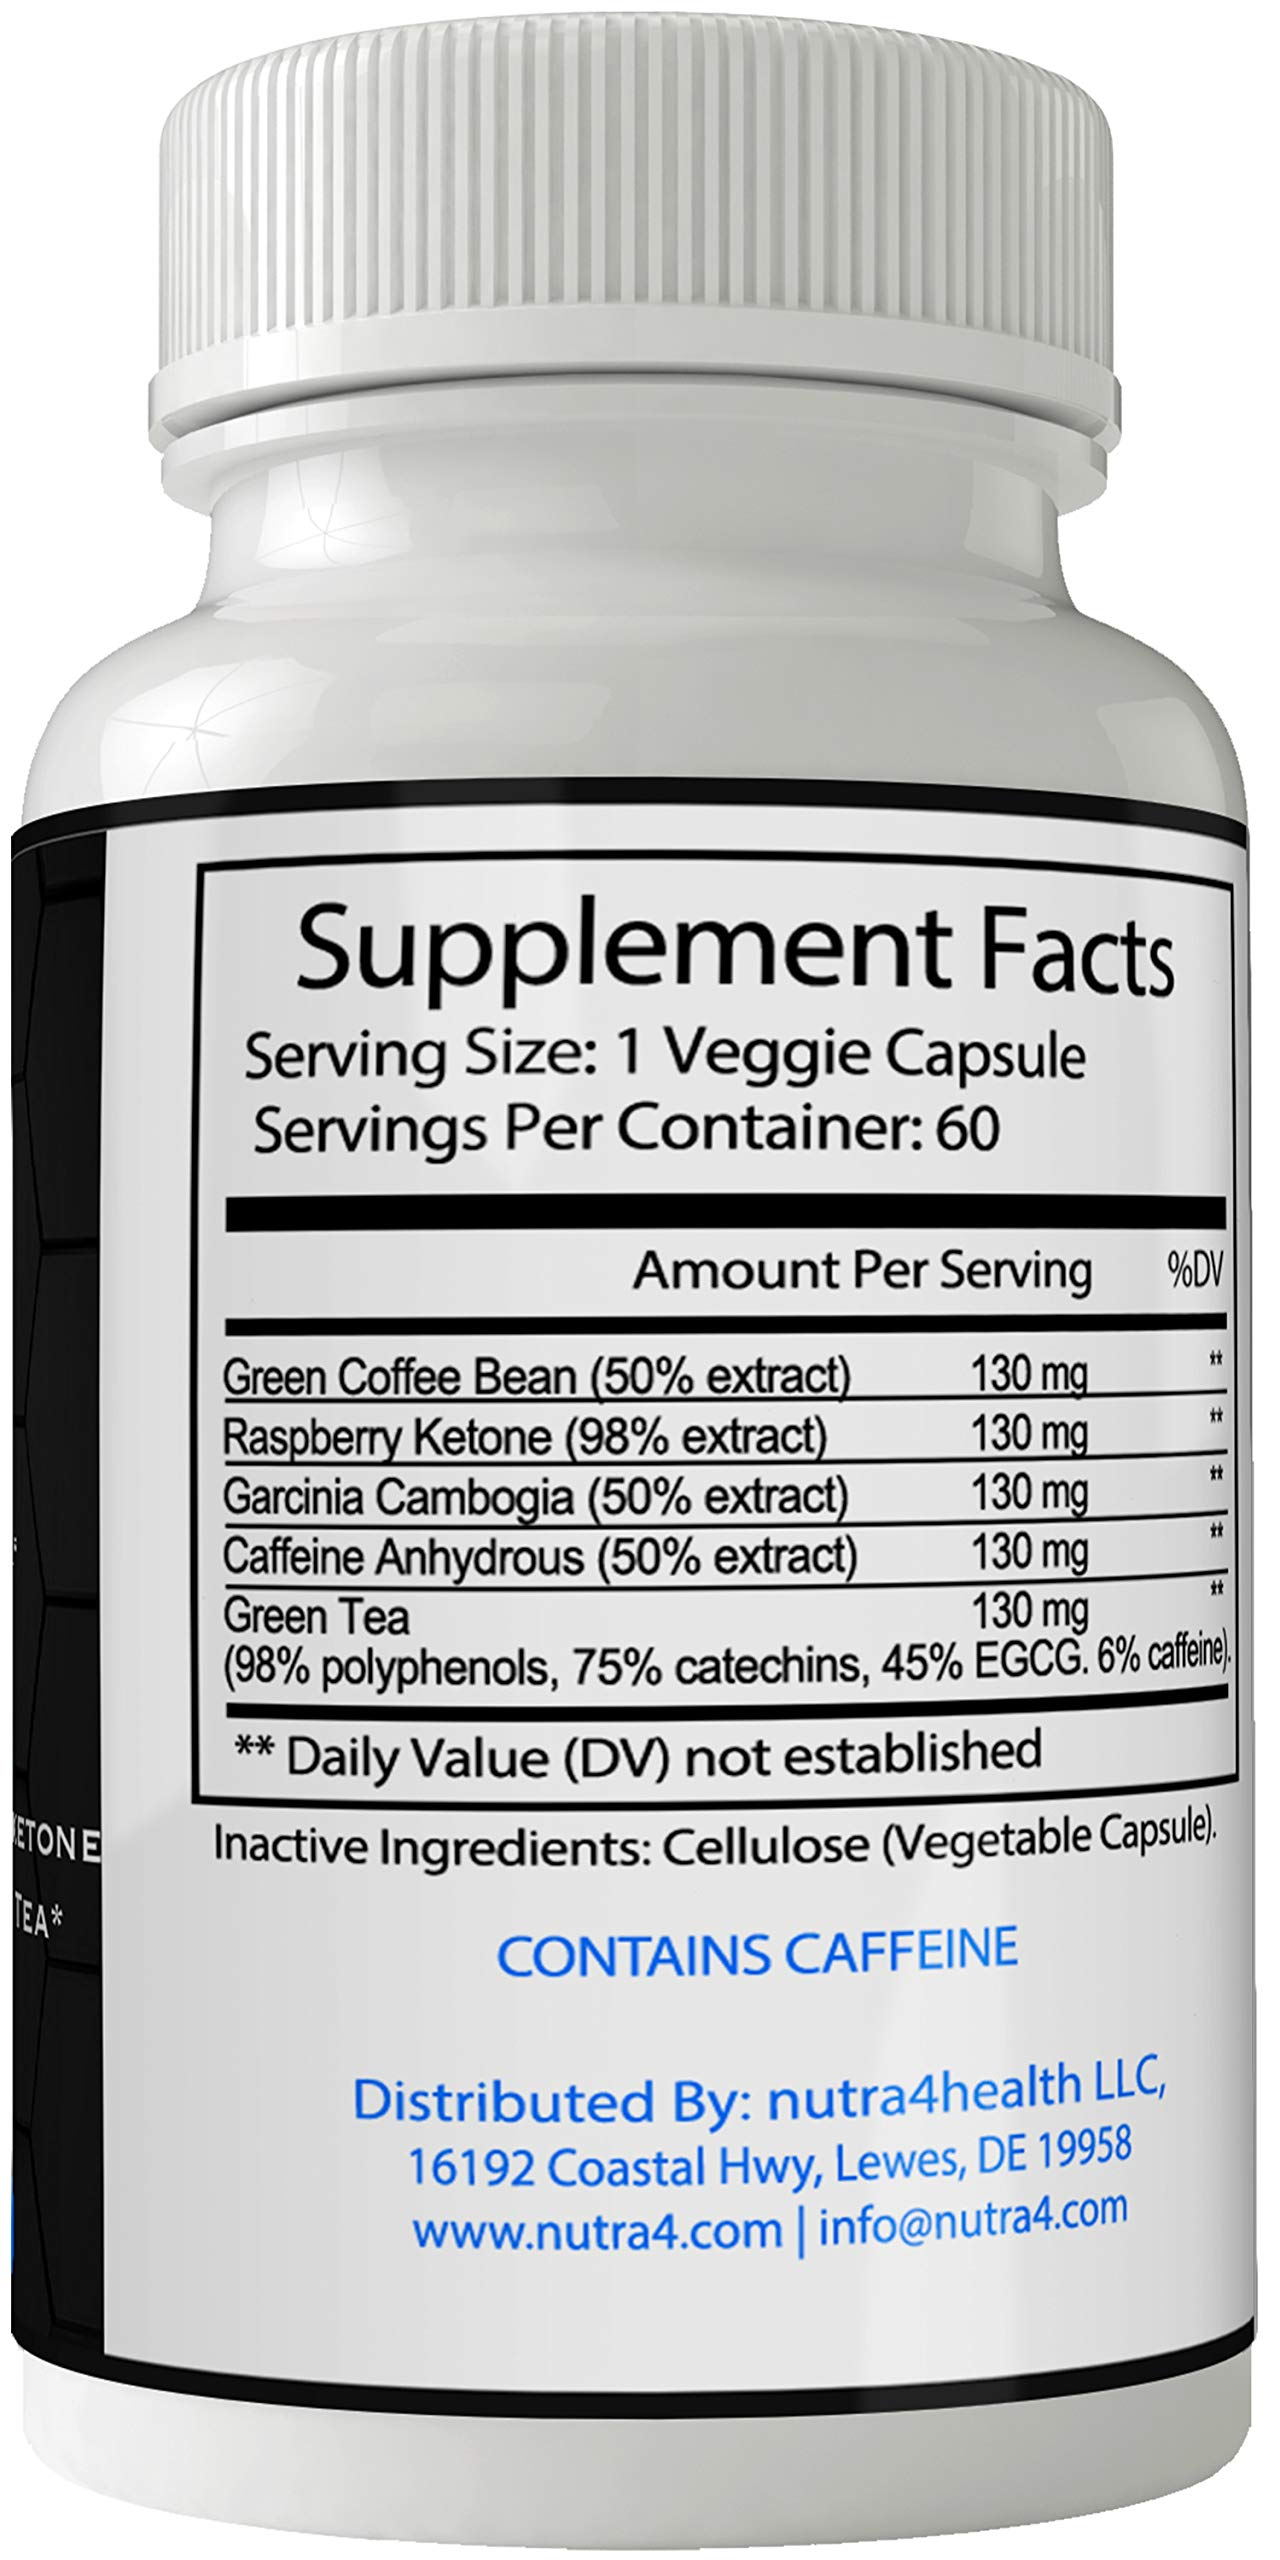 Keto Fuel Pills | Keto Fuel Weight Loss Pills | Keto Fuel Supplements - Weightloss Lean Fat Burner | Advanced Thermogenic Rapid Fat Loss Supplement for Women and Men by nutra4health LLC (Image #2)